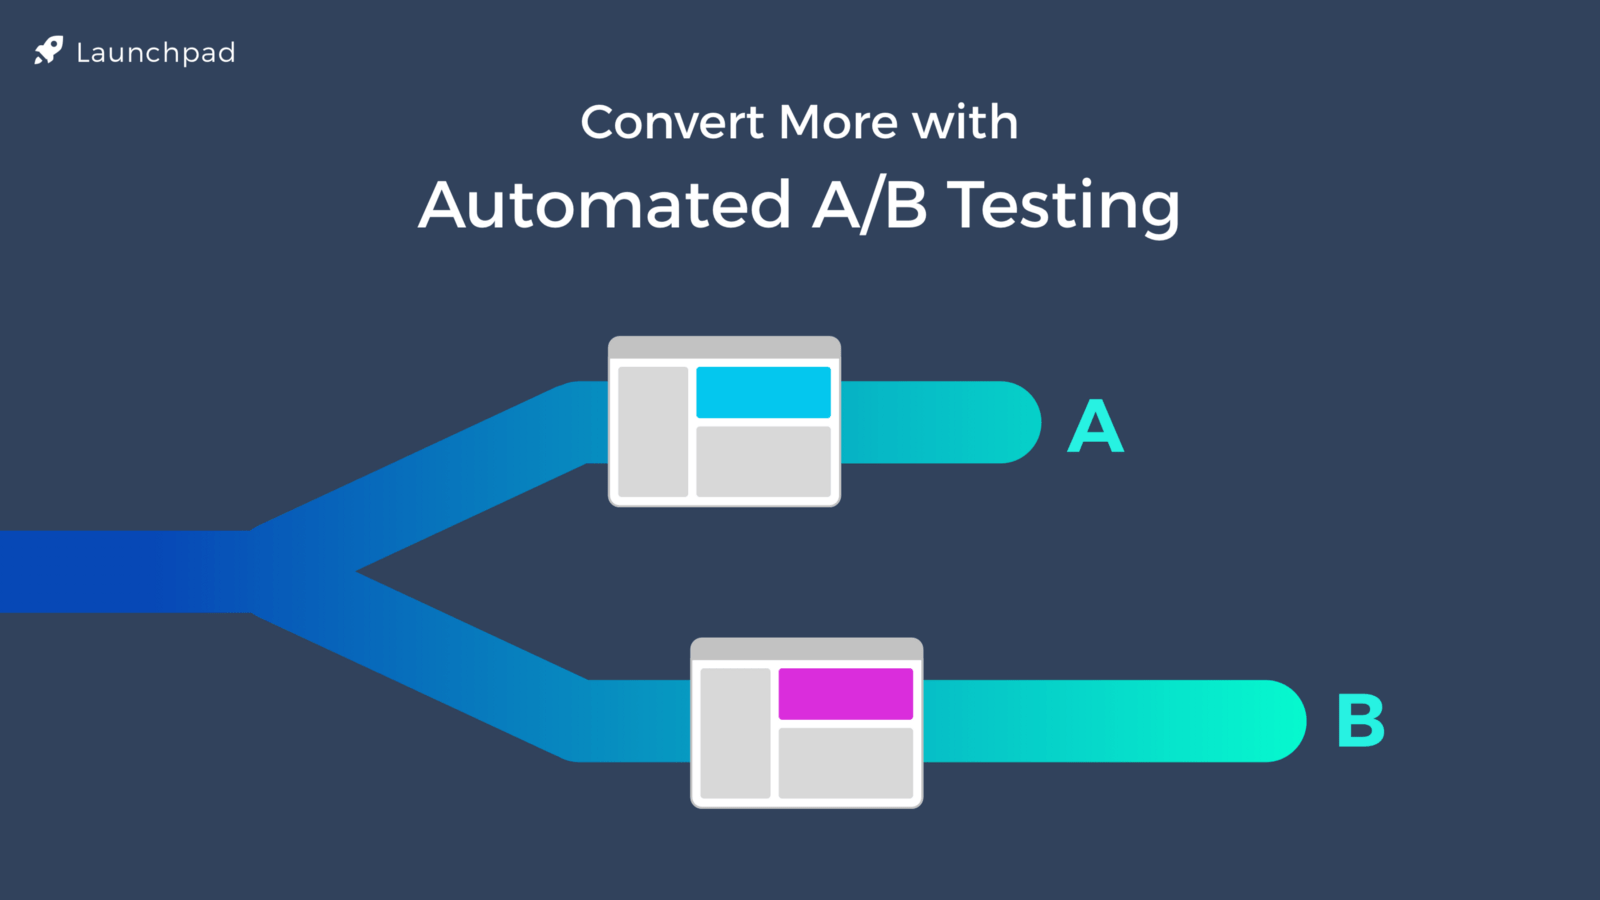 hight resolution of launchpad introducing automated a b testing